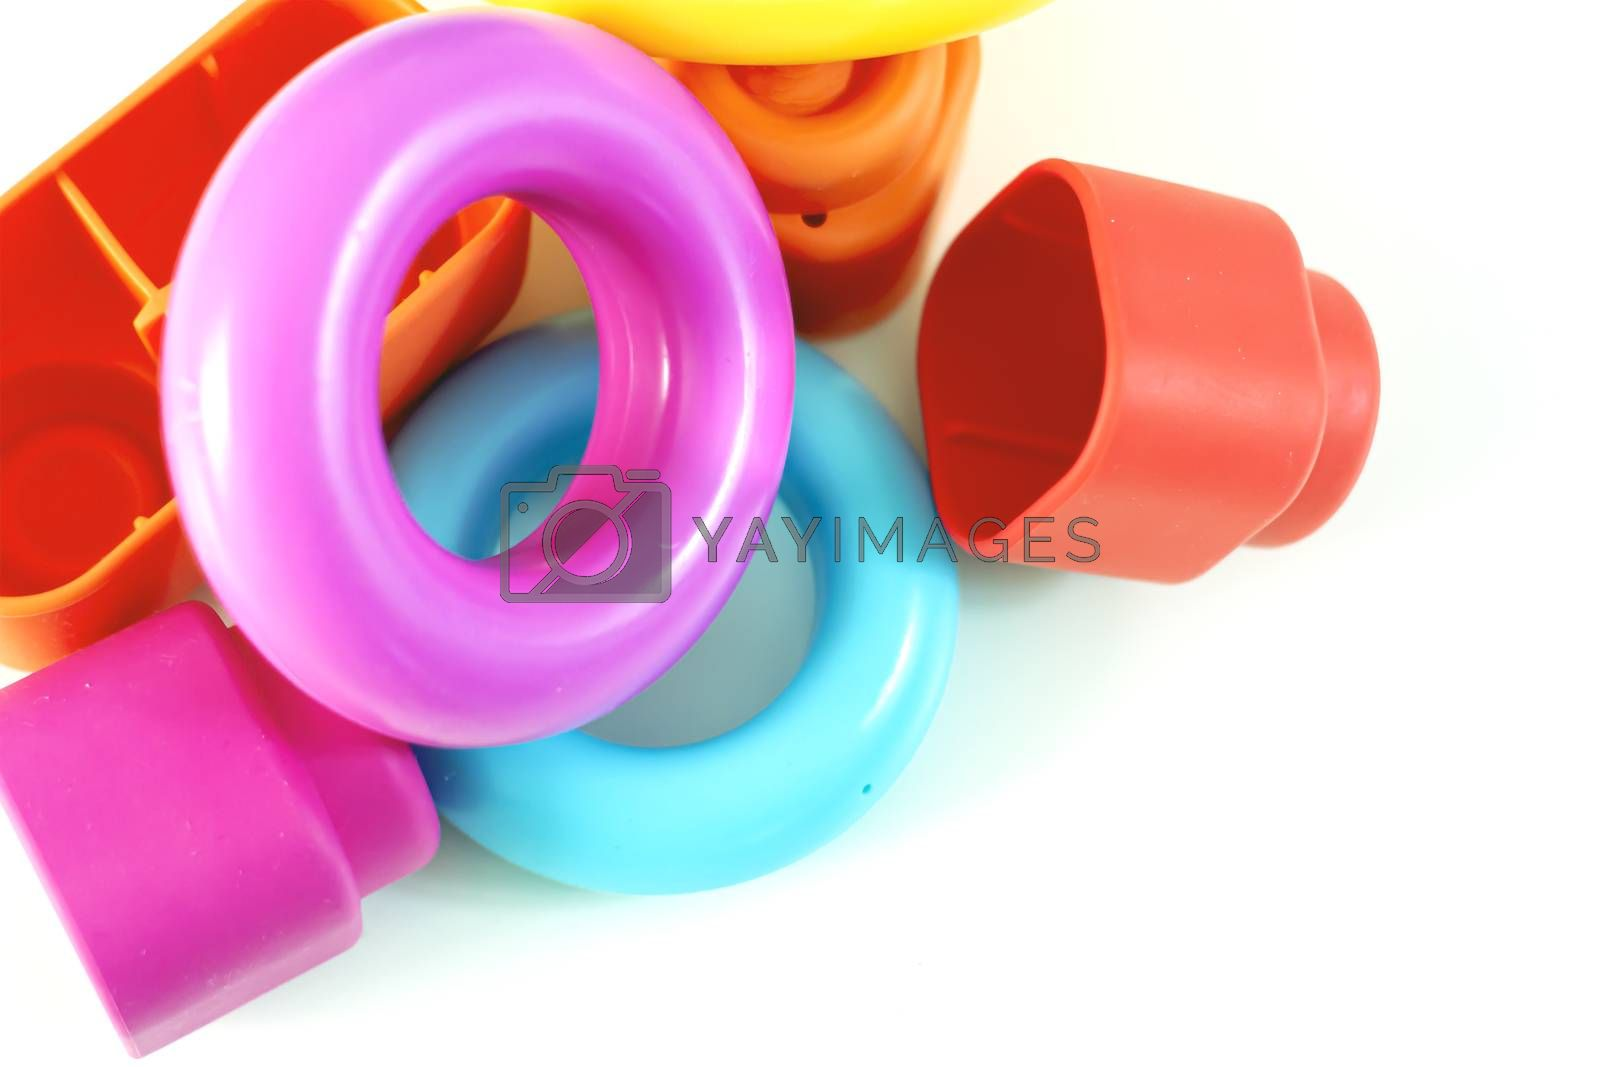 Colored plastic rings and rubber bricks for children to play. Children's toys. Growth and learning